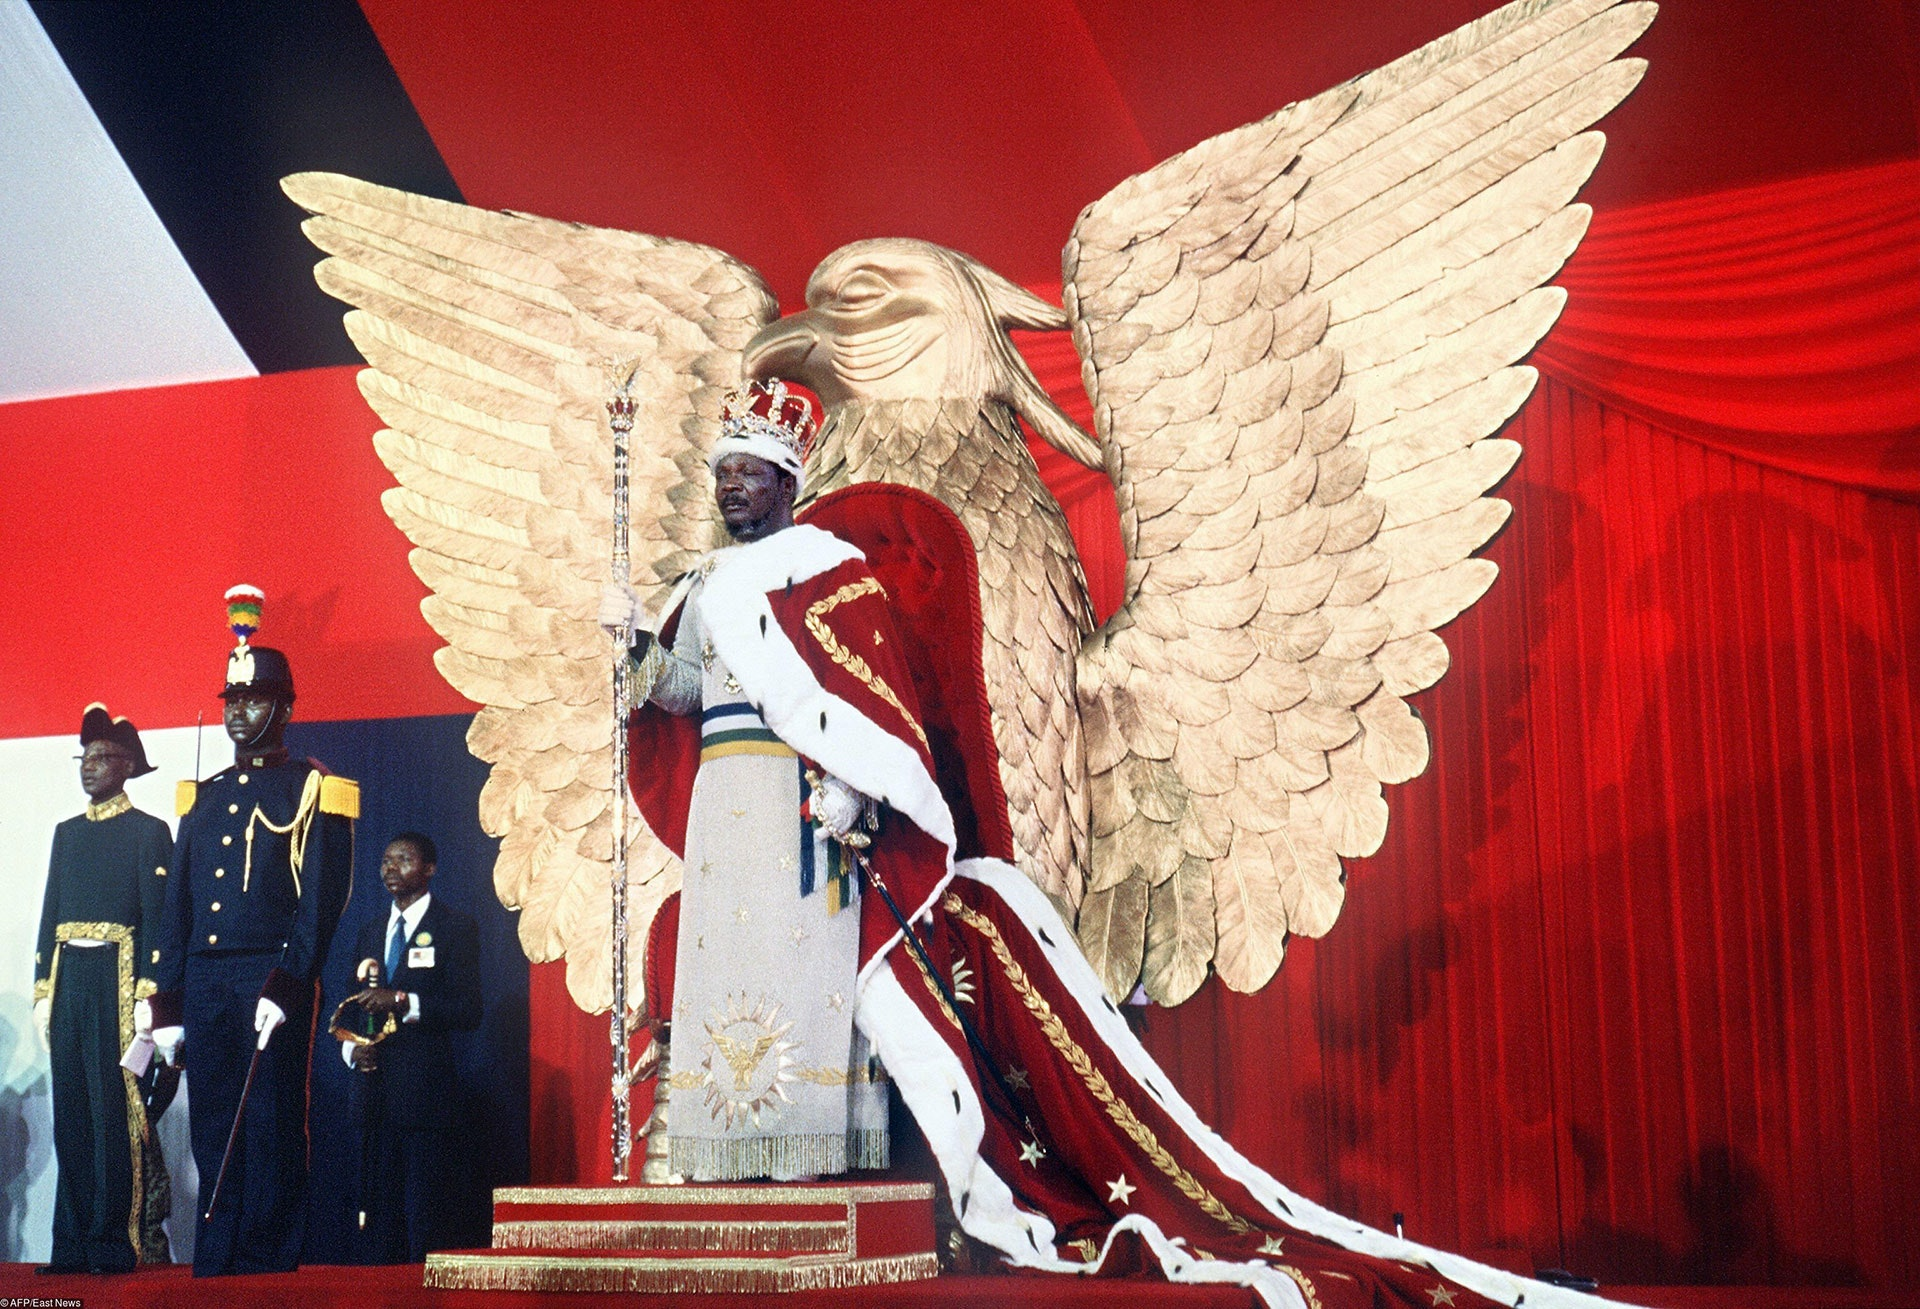 Self-proclaimed emperor of Centrafrican empire, Jean-Bedel Bokassa stands 04 December 1977 on the throne after crowning himself in Bangui, following Napoleon's example